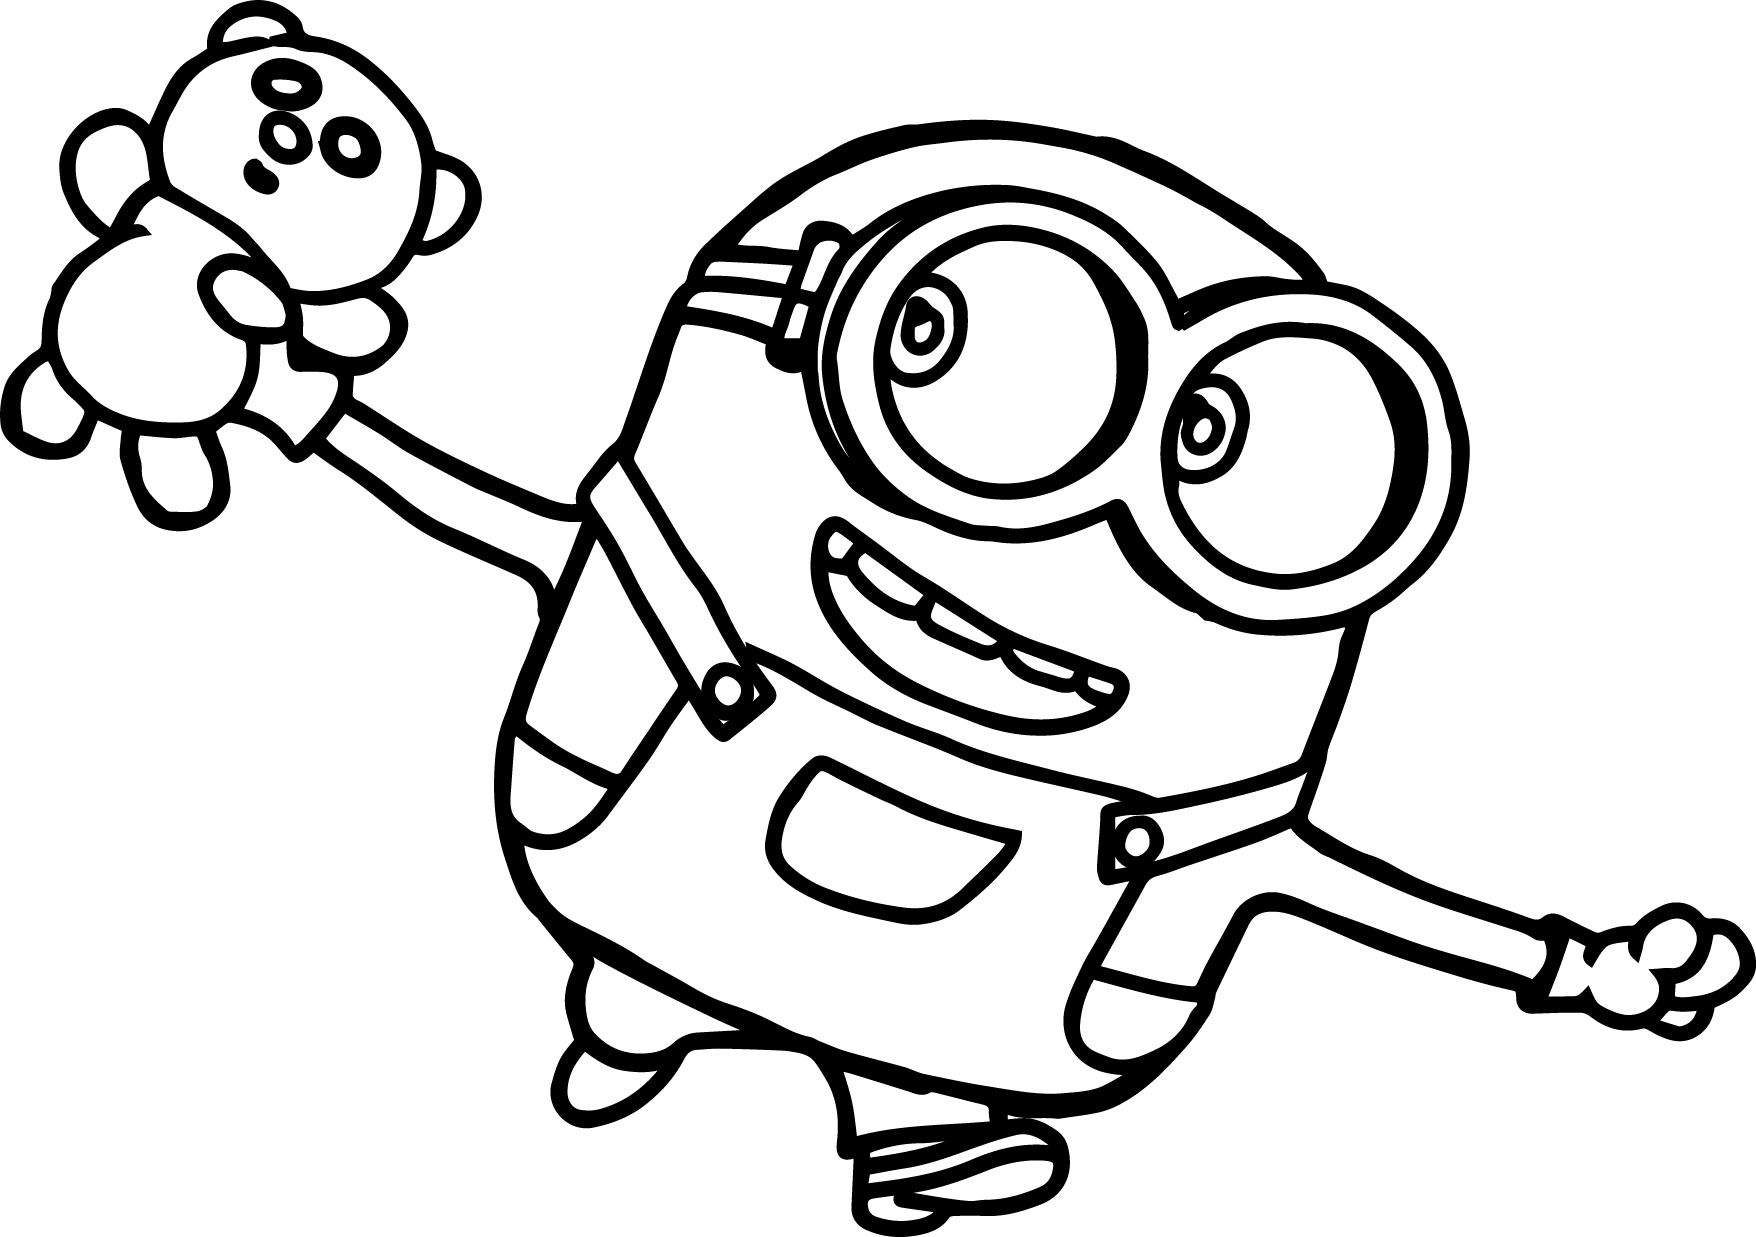 Bob Minions Movie 2015 Coloring Page Wecoloringpage Minion Coloring Pages Minions Coloring Pages Cute Coloring Pages